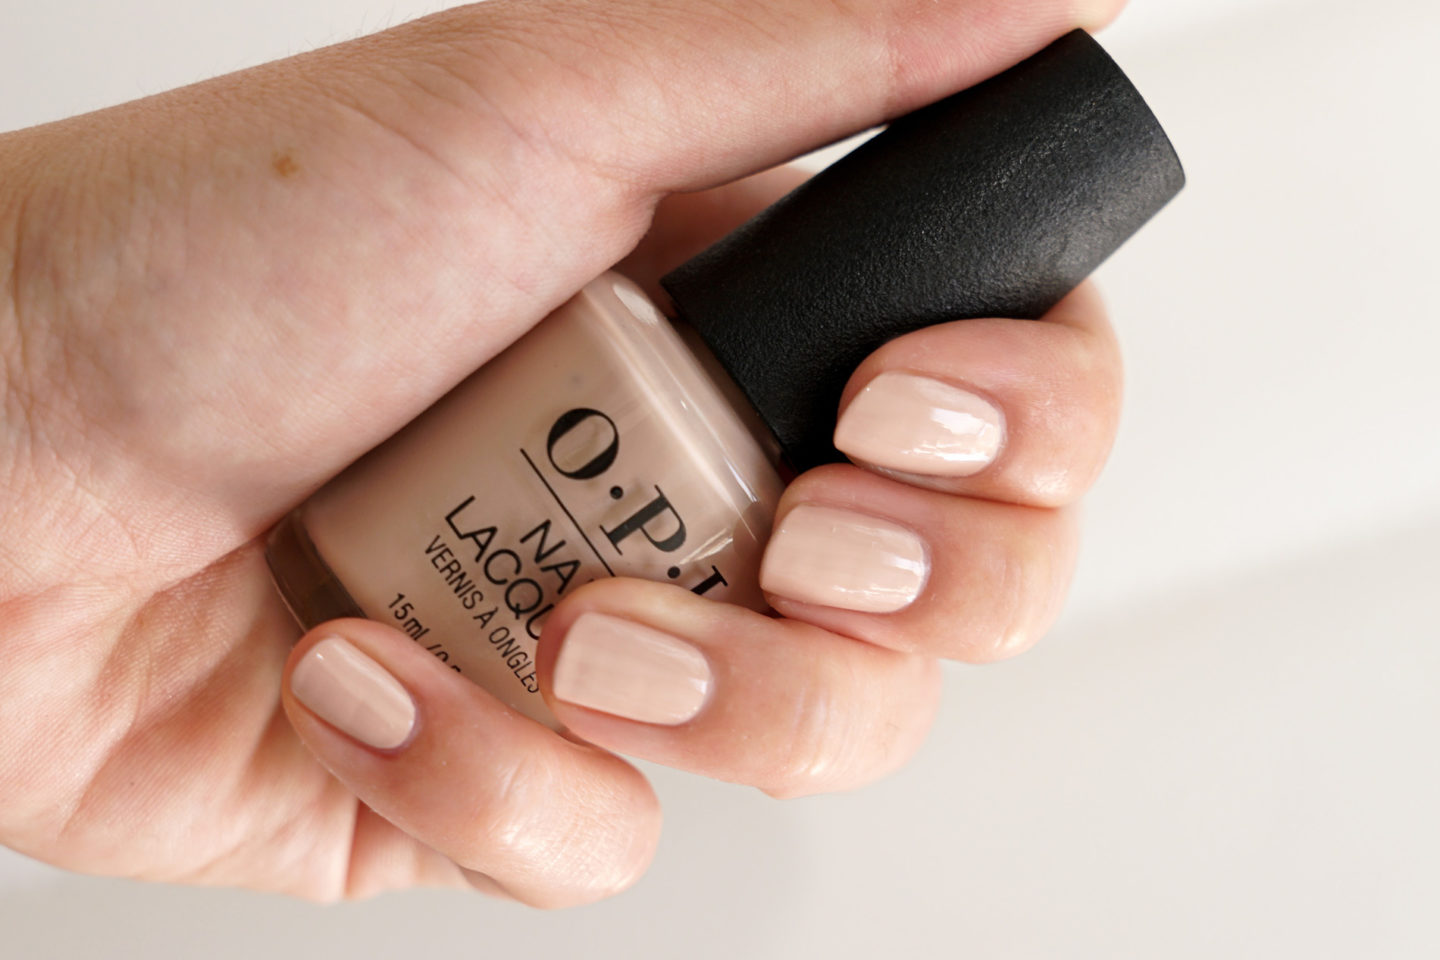 OPI Tiramisu for Two best opaque neutral polish